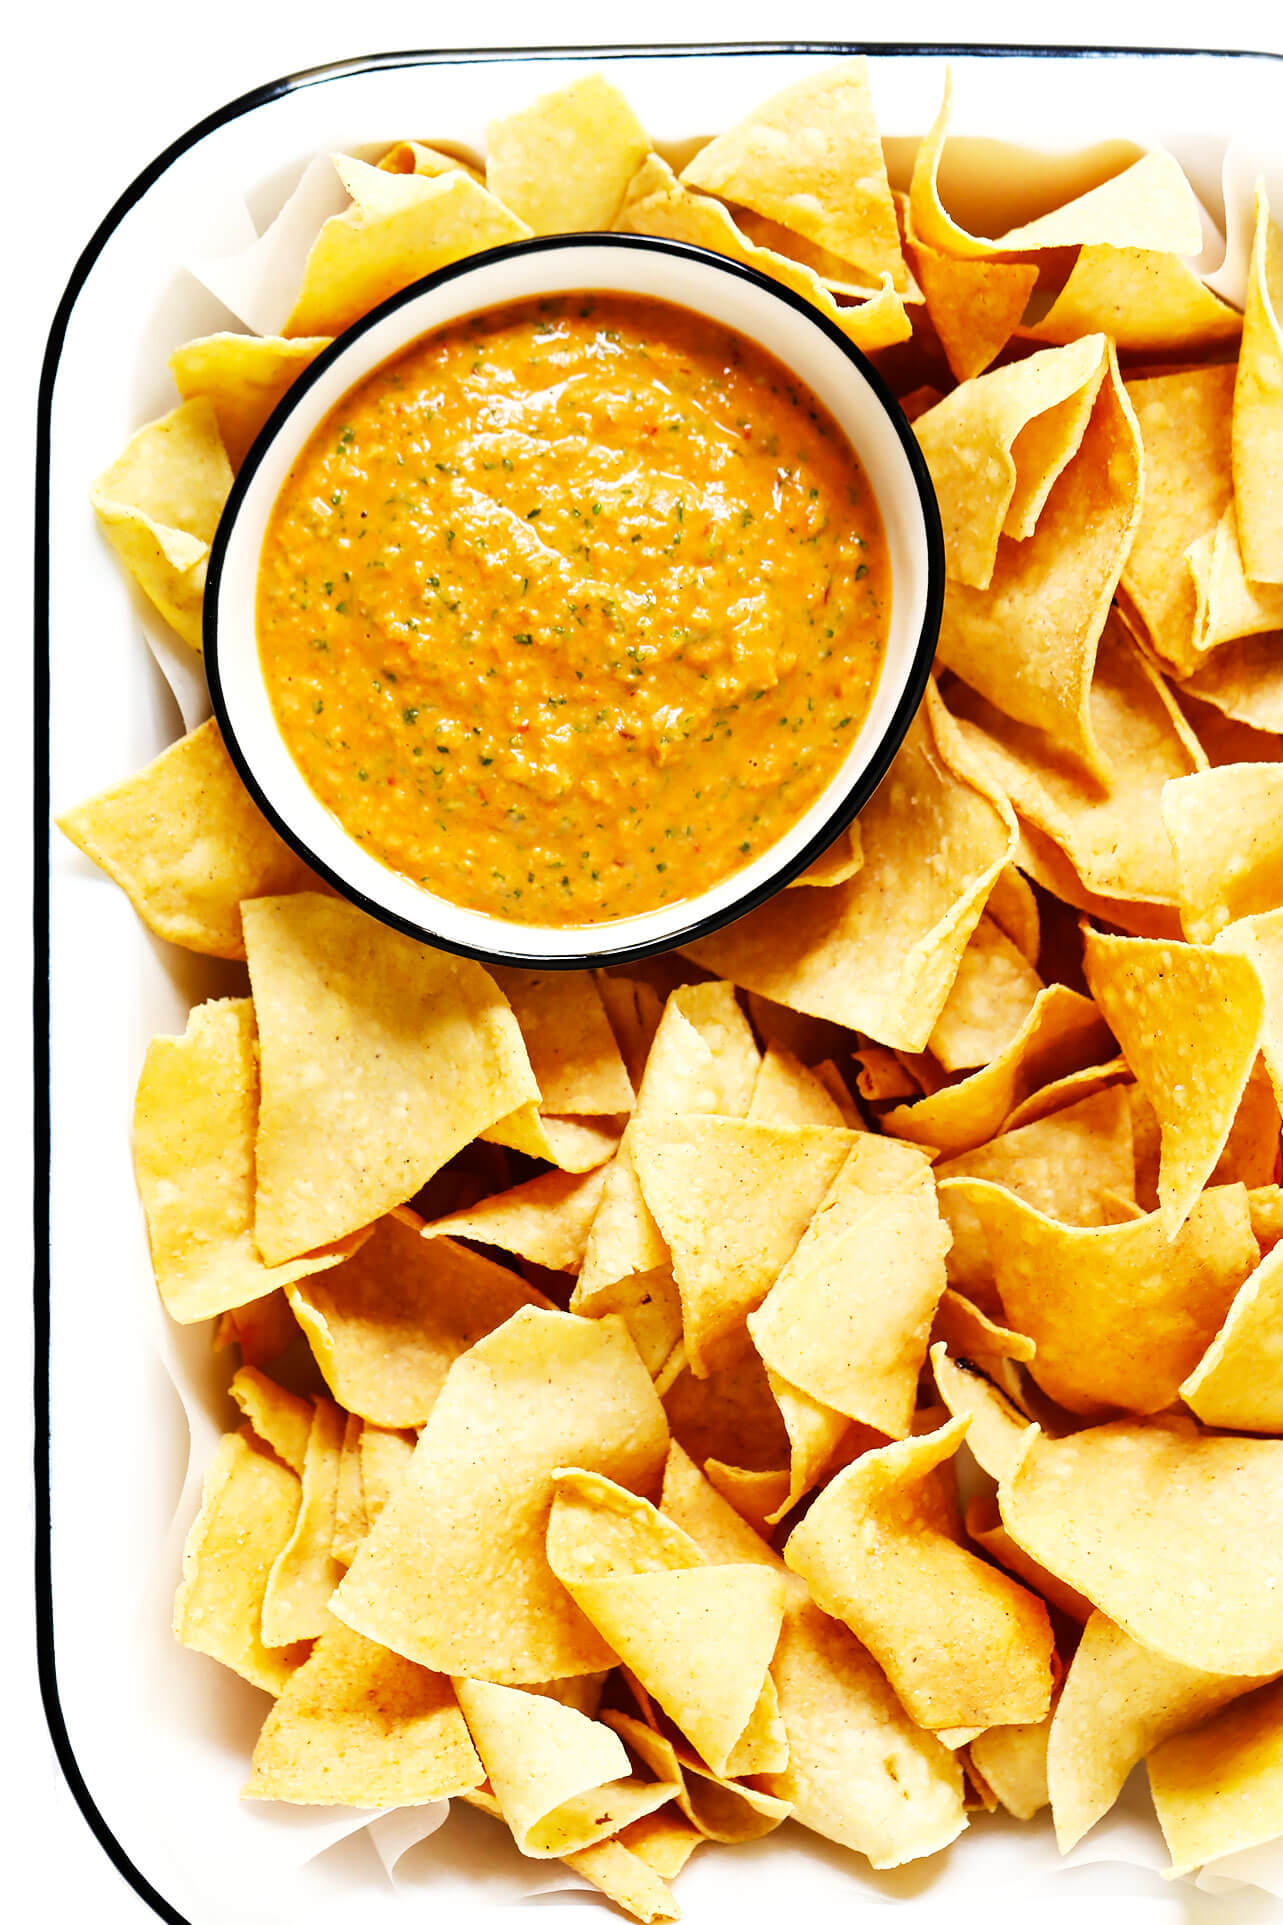 Peanut Chipotle Salsa Recipe with Tortilla Chips